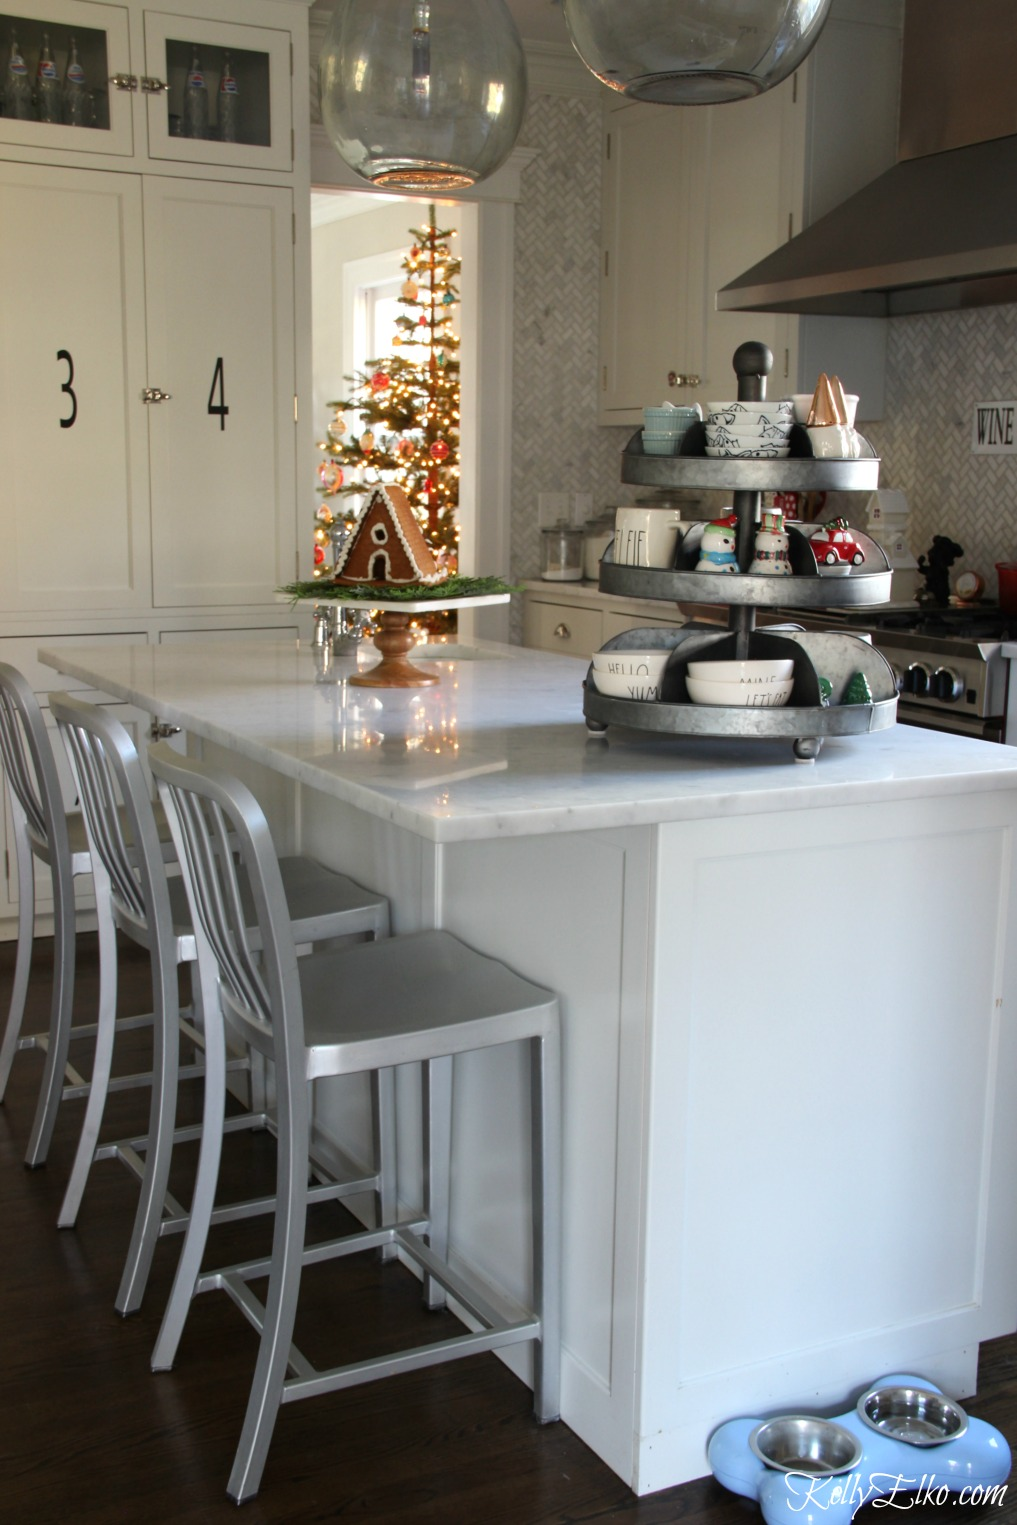 Kitchen Christmas Decorating Ideas - love this white kitchen filled with festive touches kellyelko.com